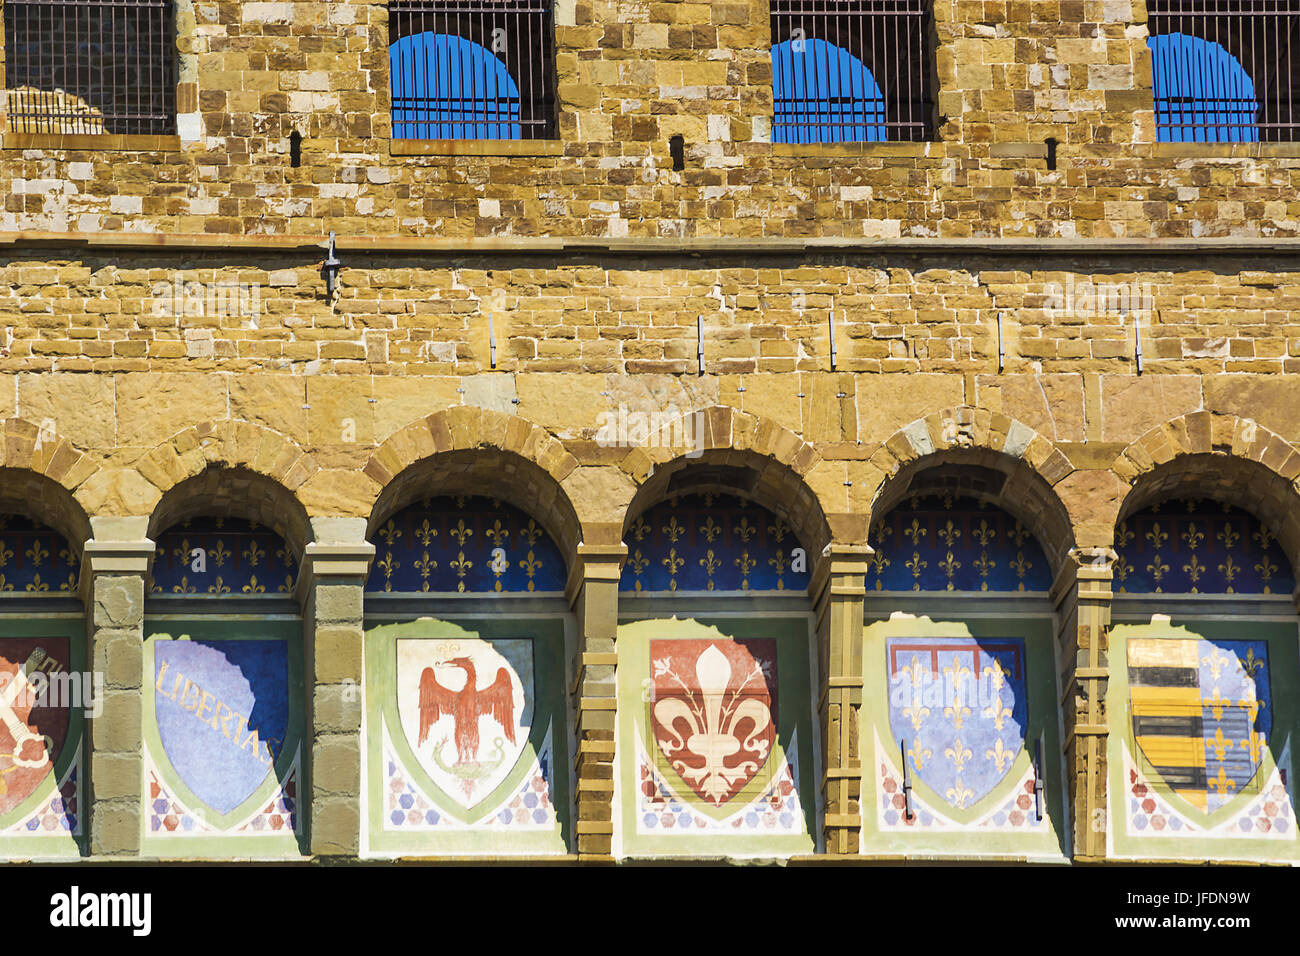 emblems of the Florentine Republic - Stock Image